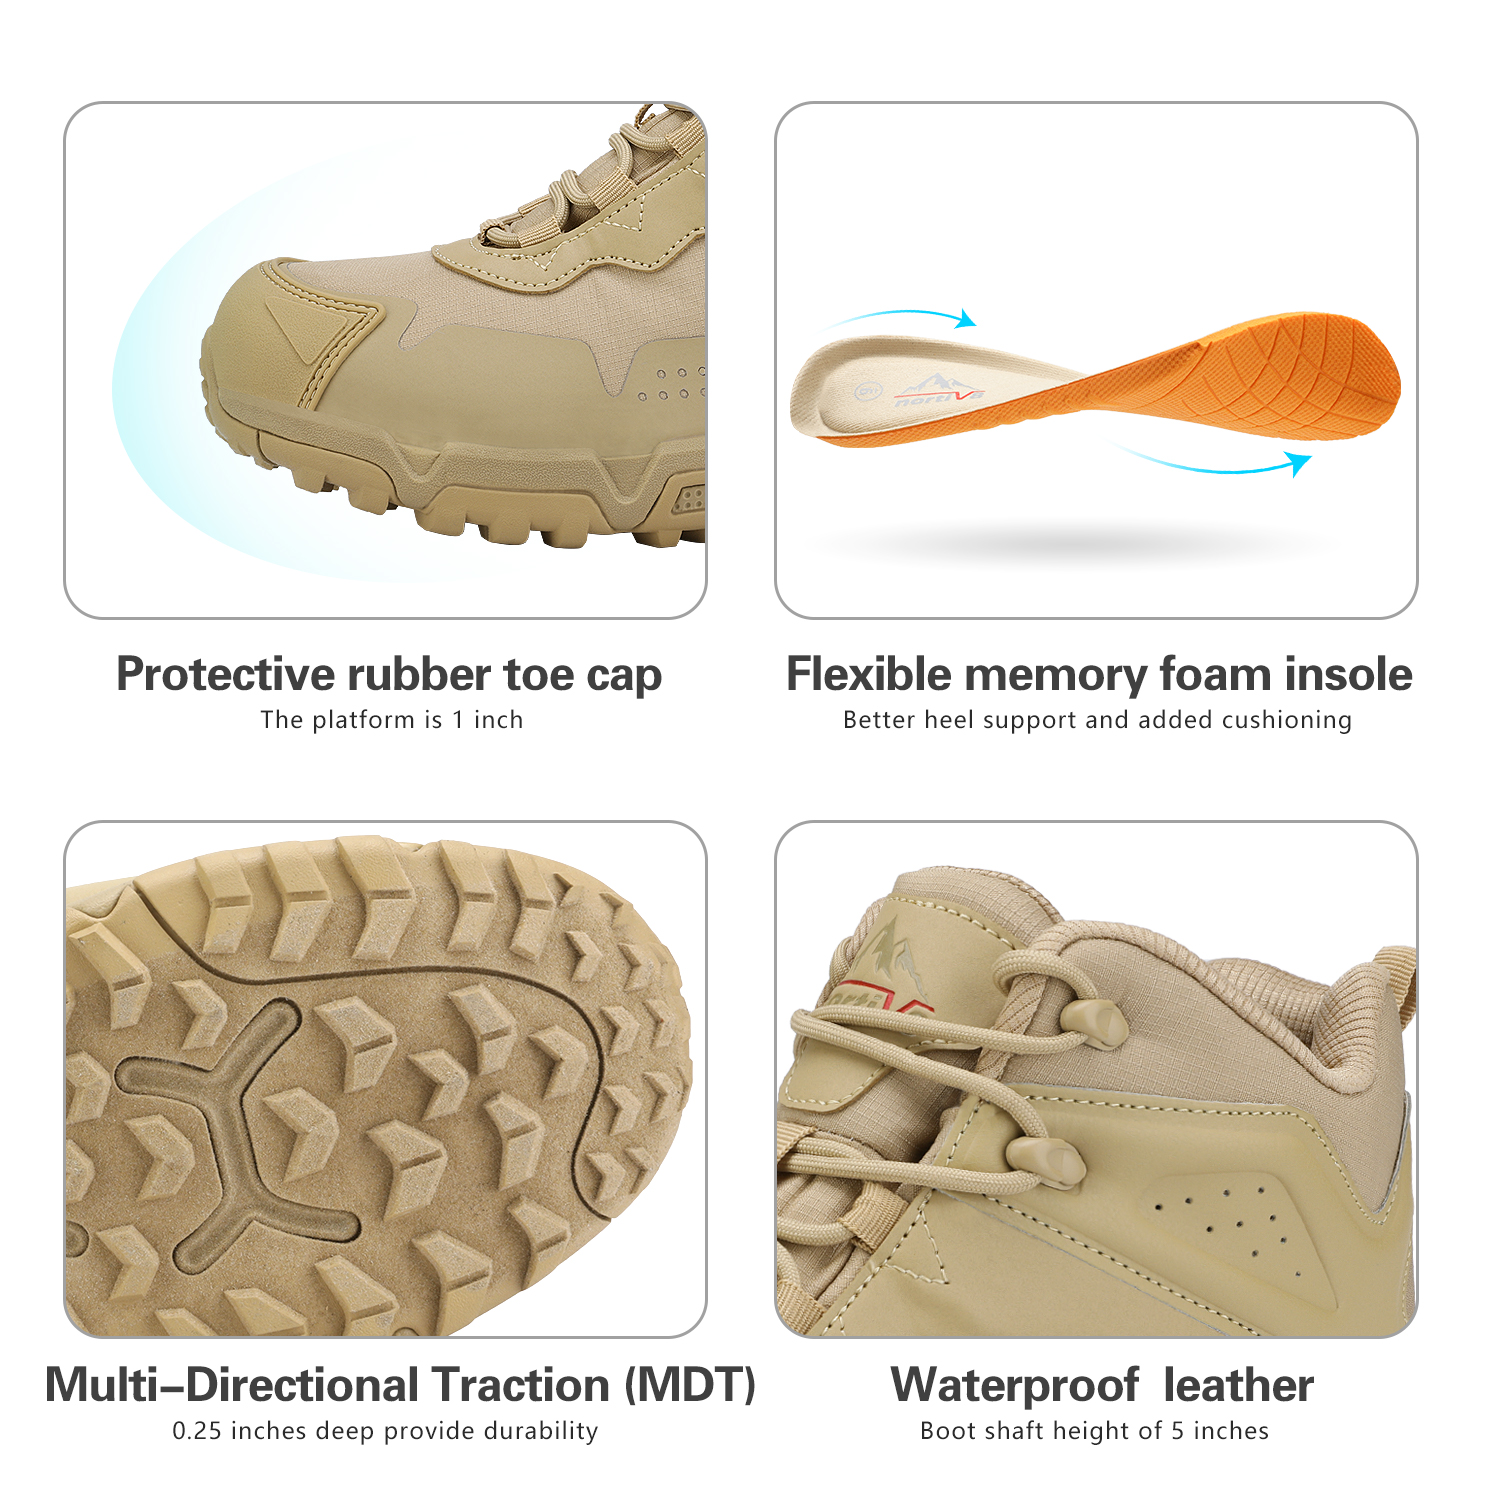 NORTIV-8-Men-039-s-Ankle-Waterproof-Hiking-Boots-Lightweight-Backpacking-Work-Shoes thumbnail 4